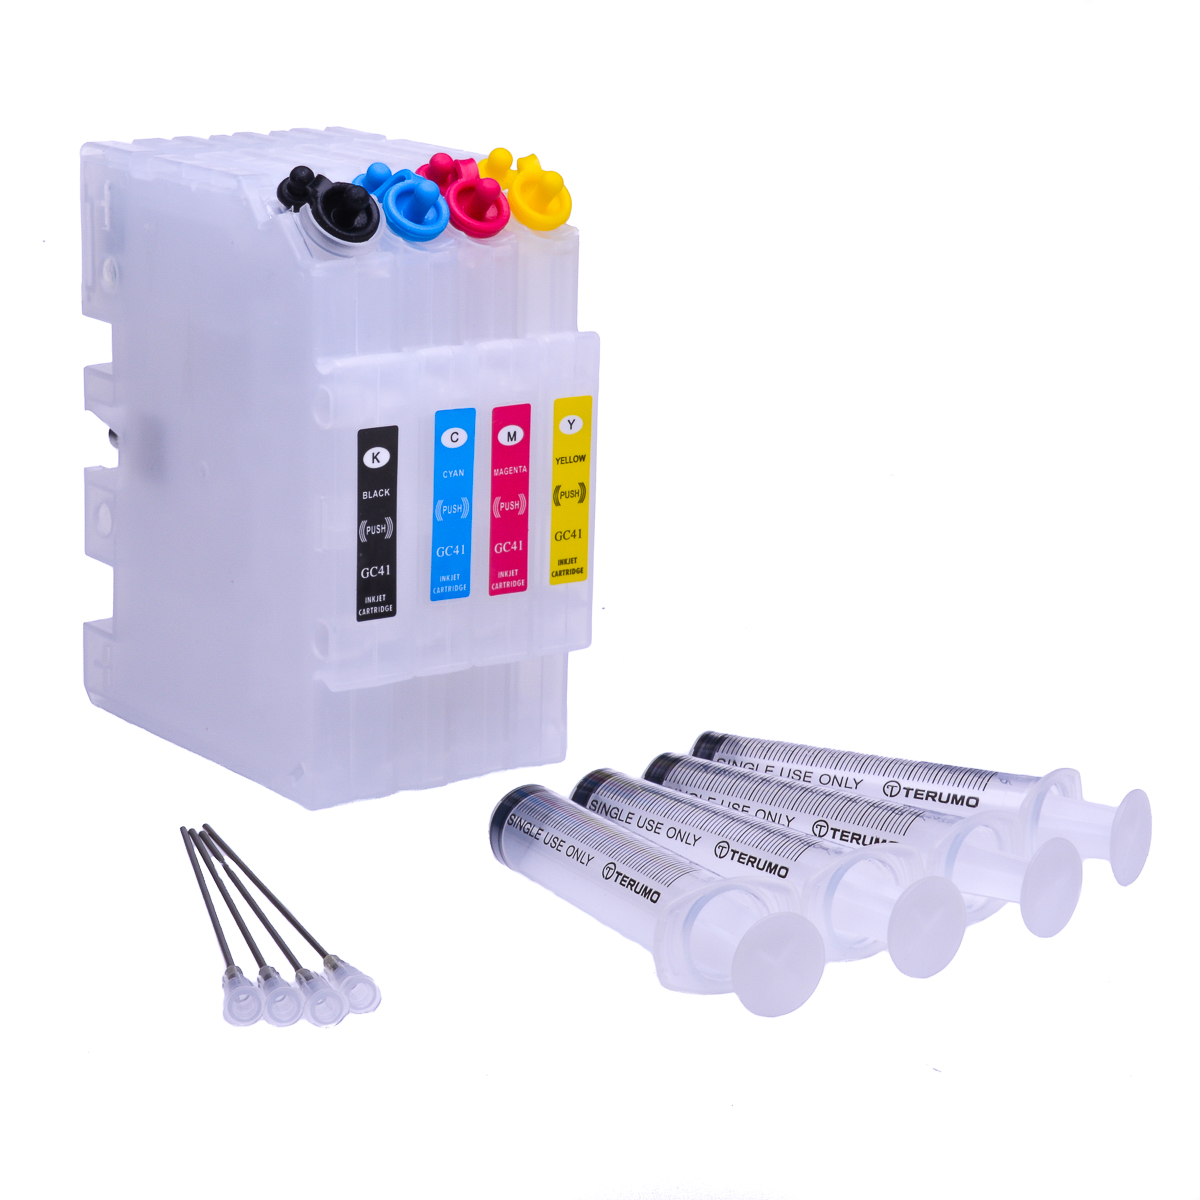 Refillable Sublimation ink cartridge for Ricoh SG3110SFNw printer #2